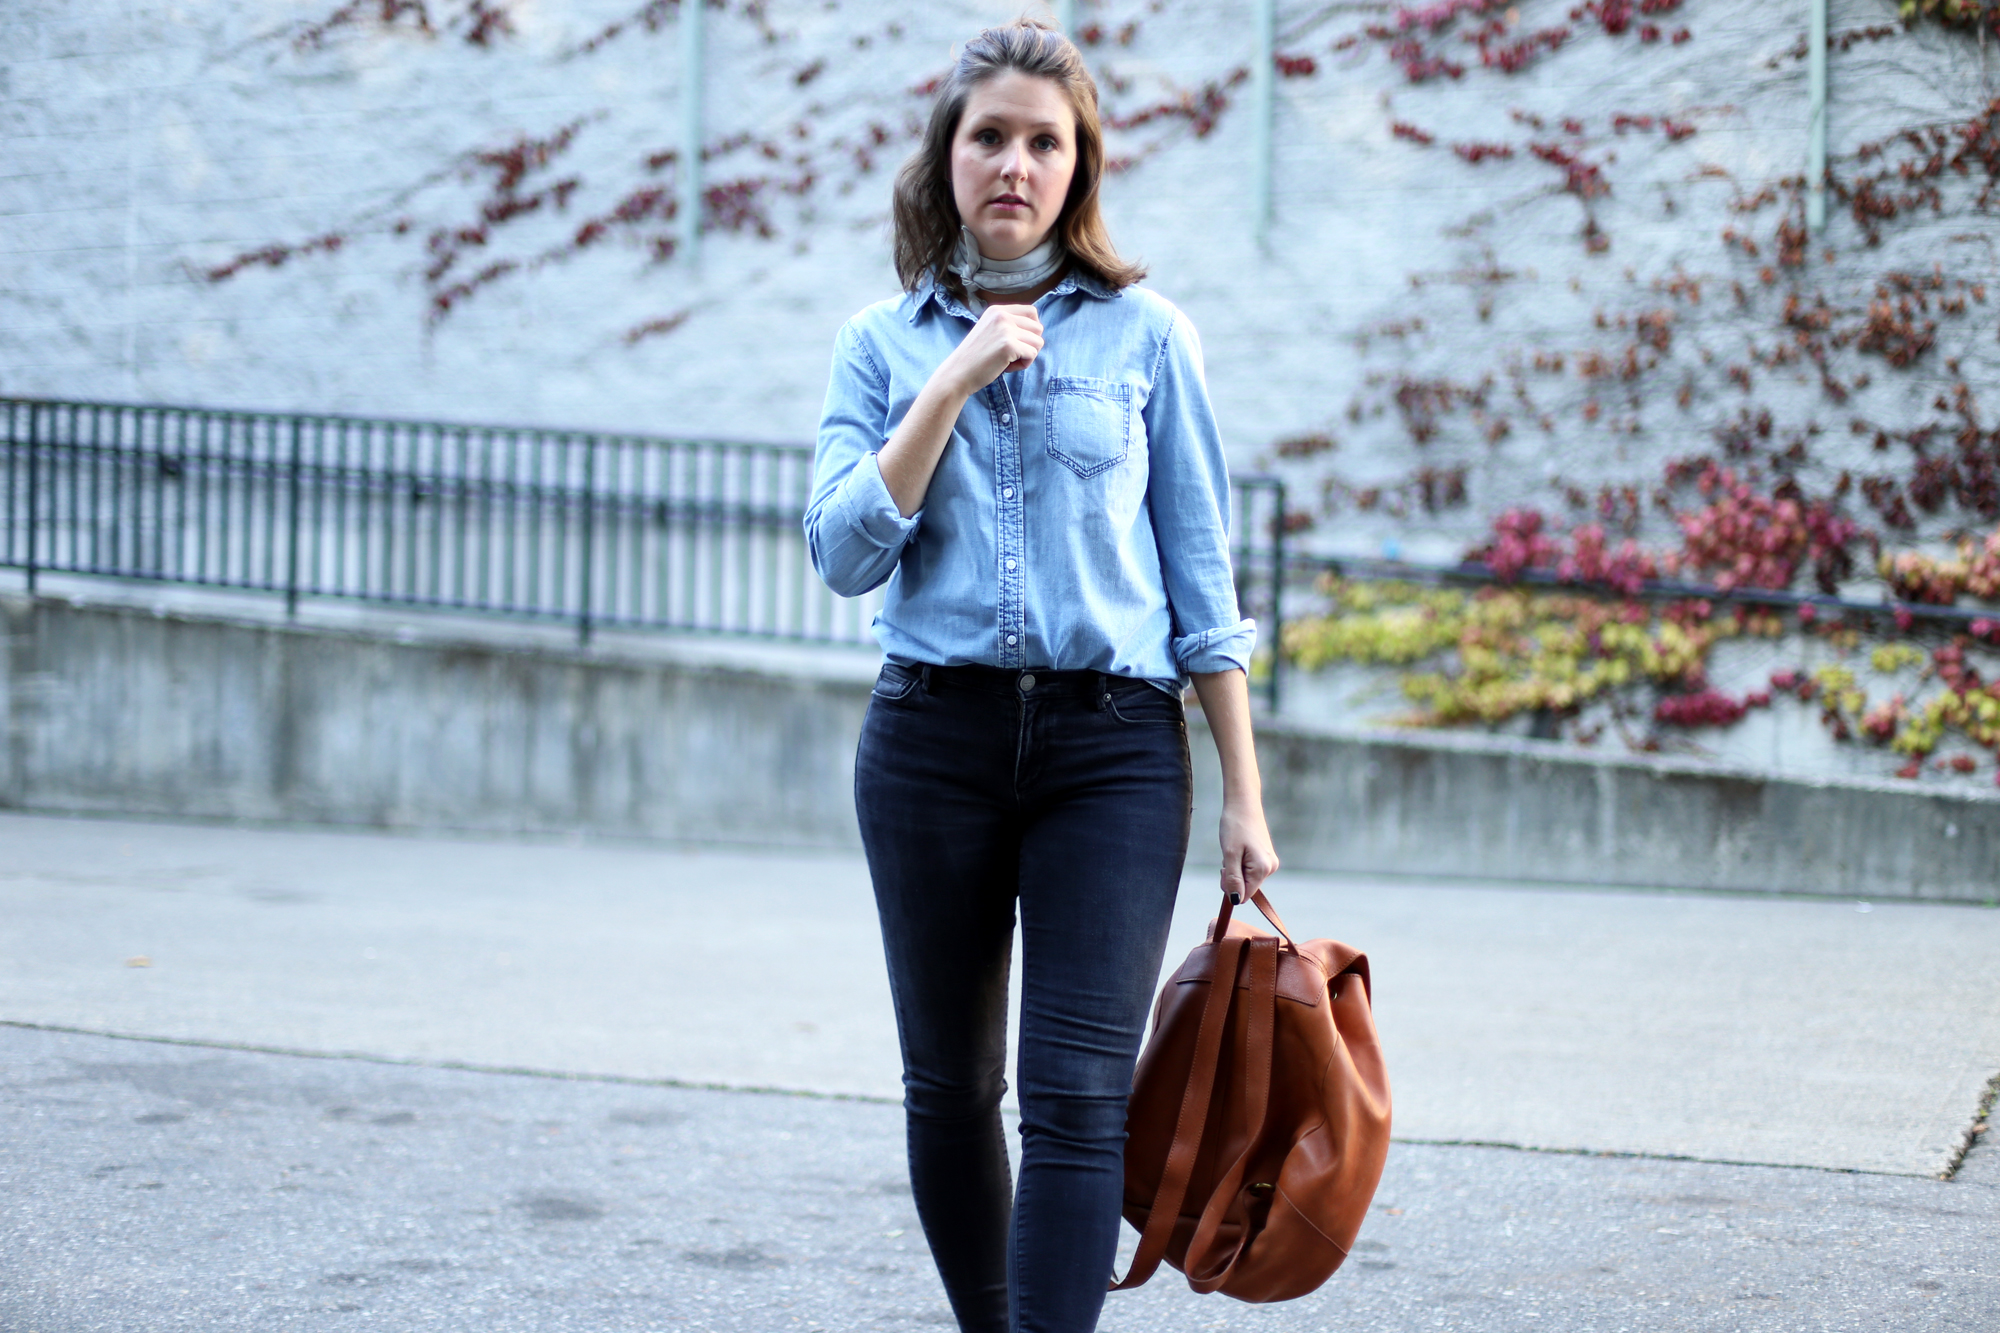 Fall essentials: leather backpack, denim button up shirt, black skinny jeans, minimalist jewellery, and a neck scarf.